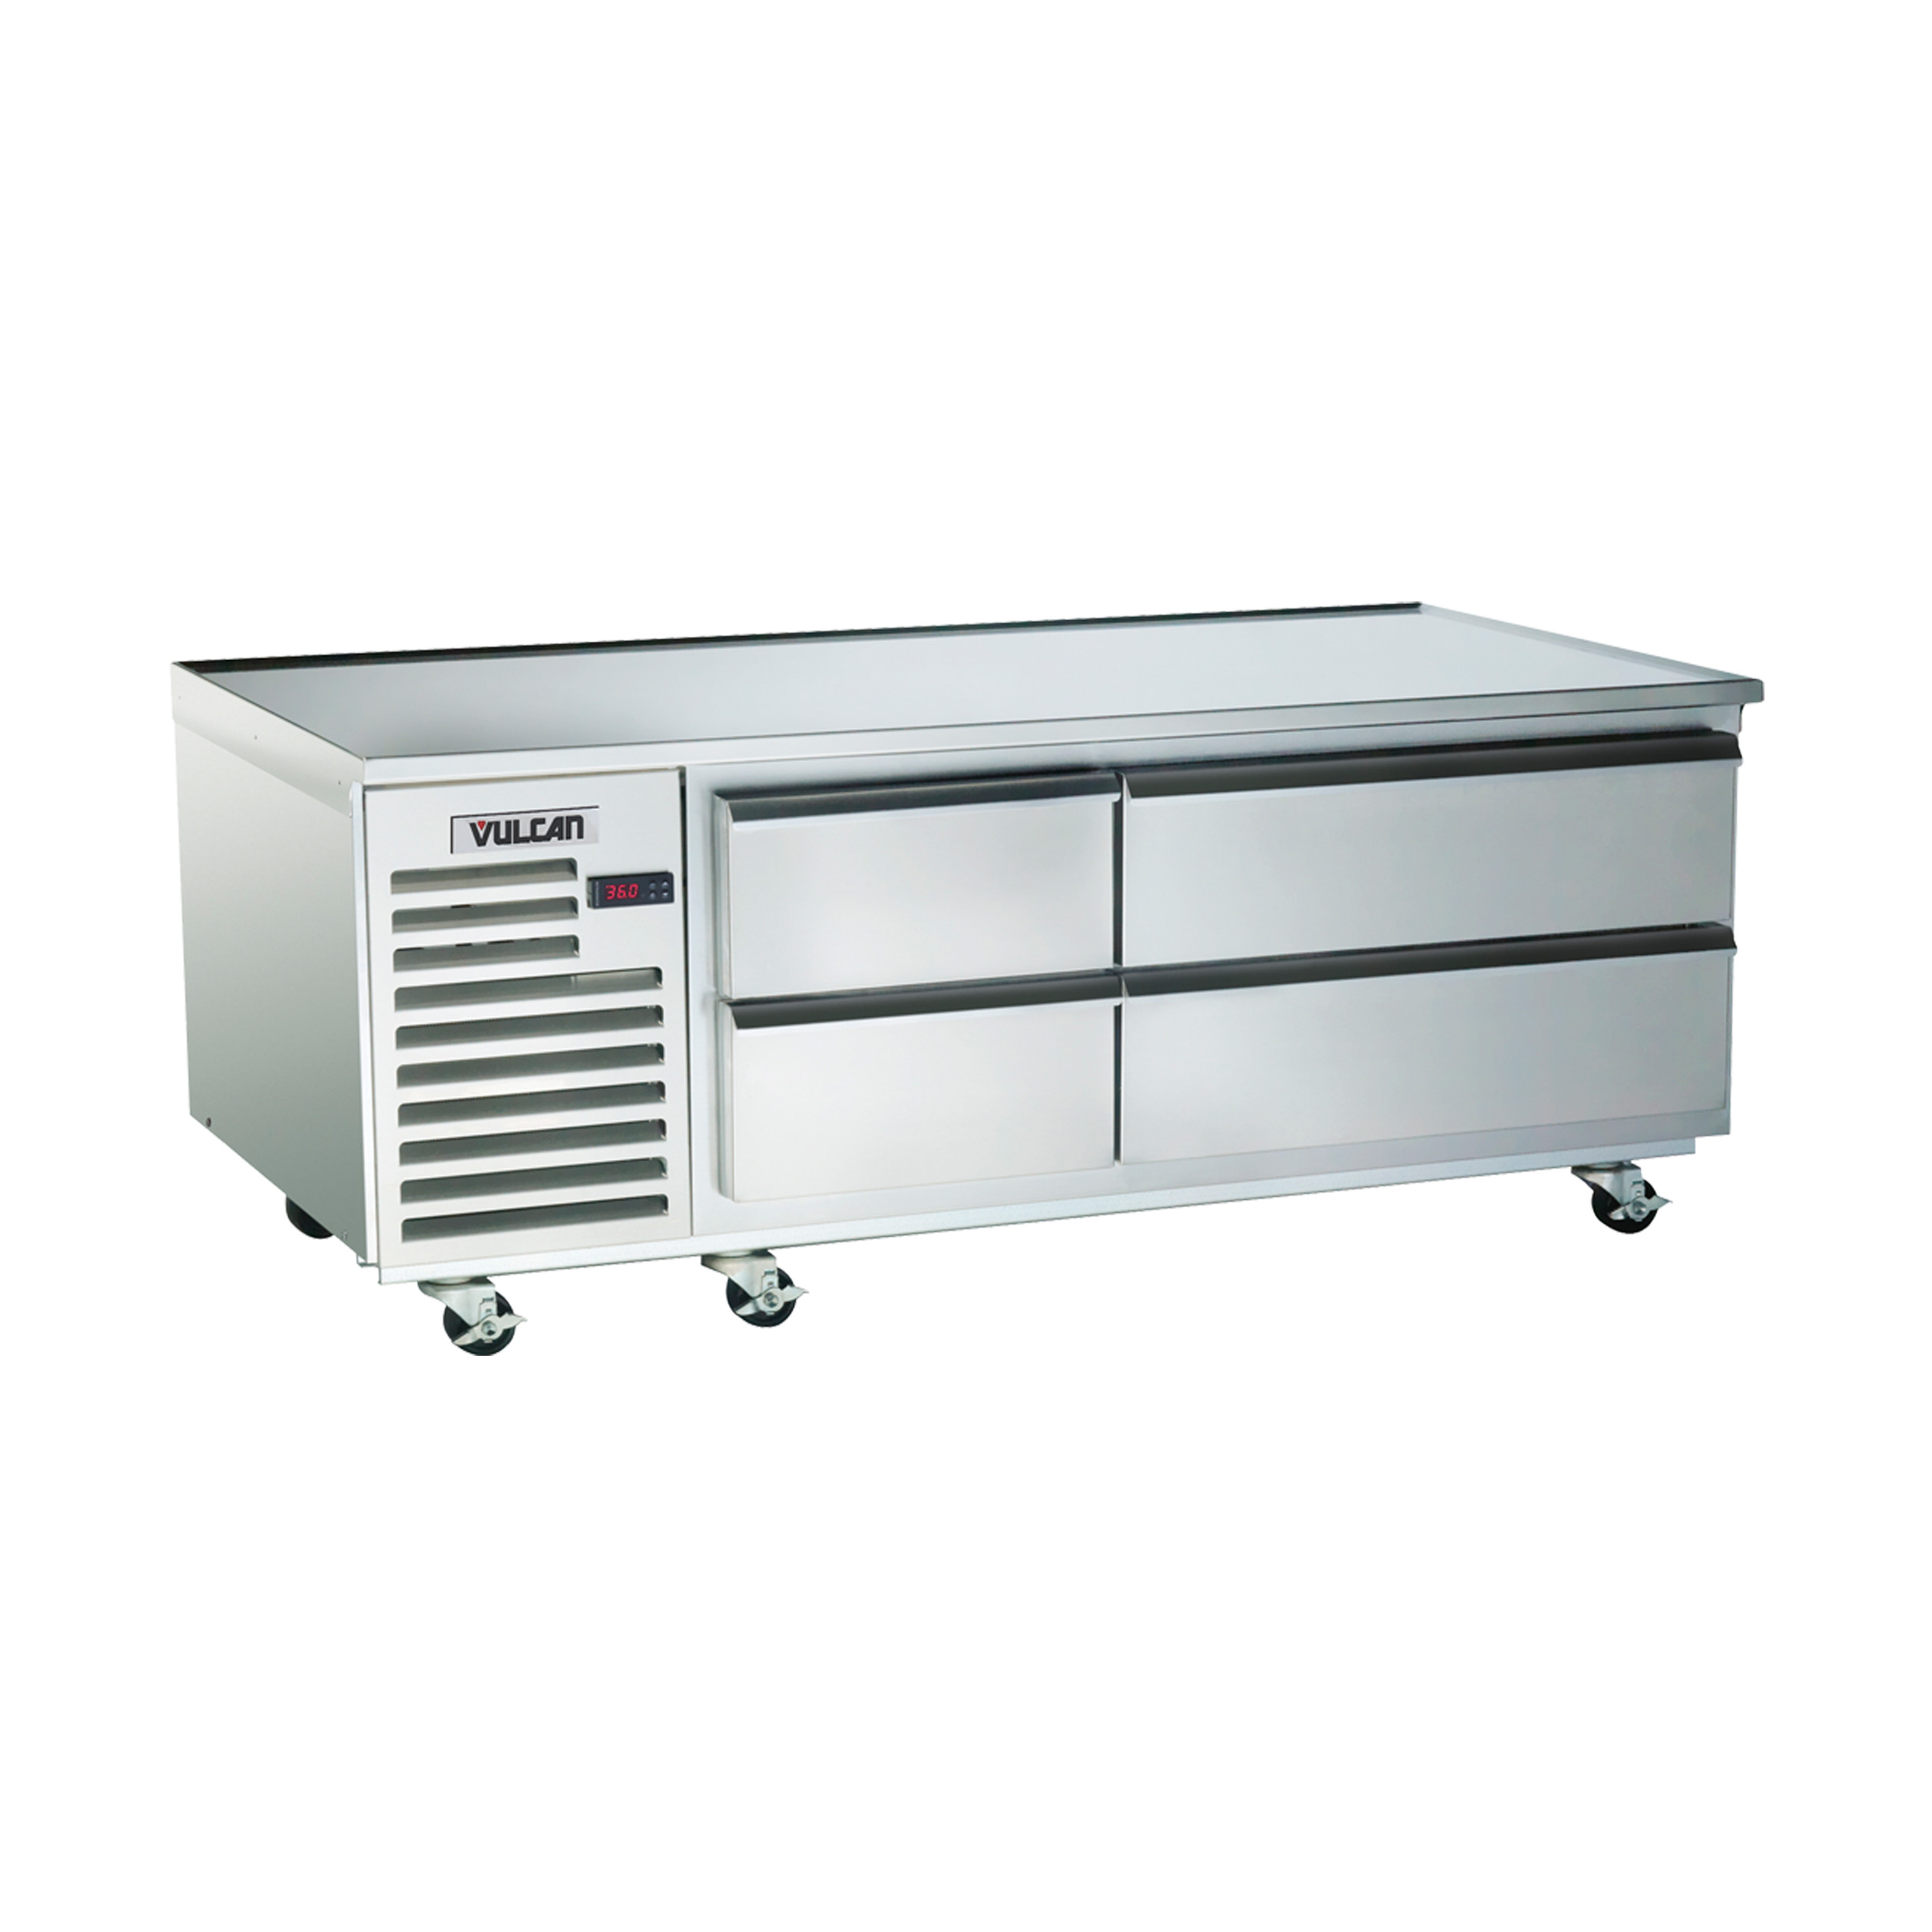 Vulcan VR60 equipment stand, refrigerated base